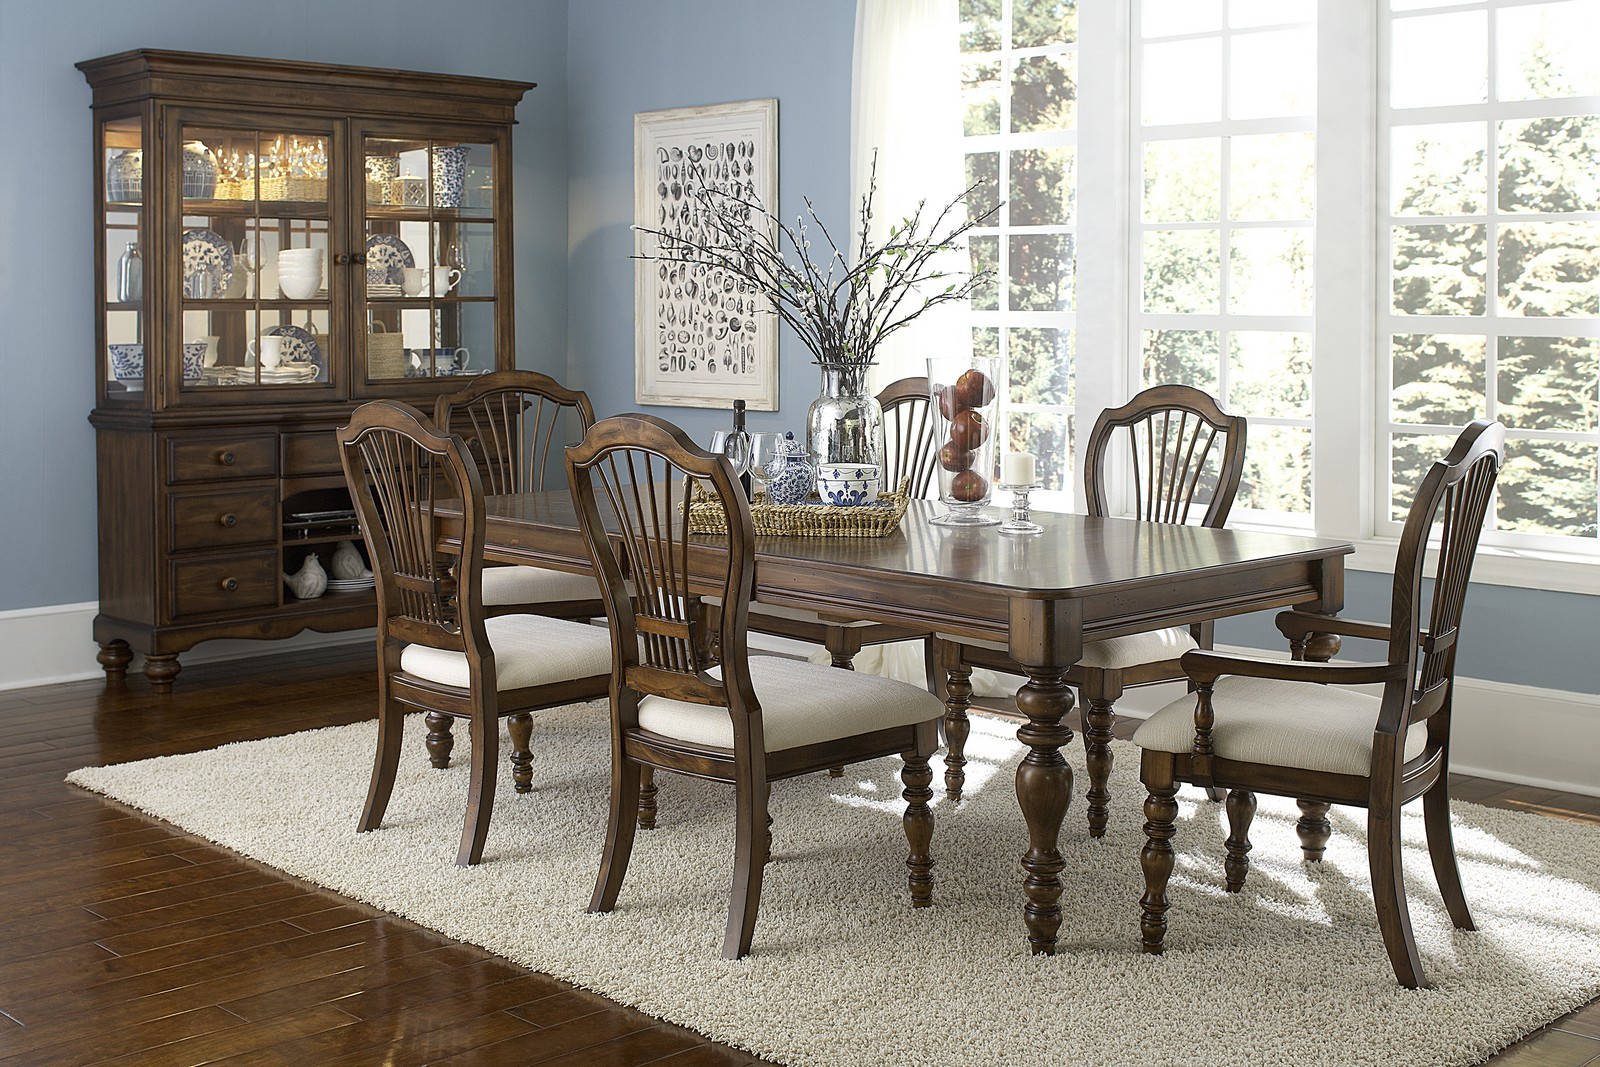 Hillsdale Pine Island 7 PC Dining Set with Wheat Back Side Chairs and Arm Chairs - Dark Pine